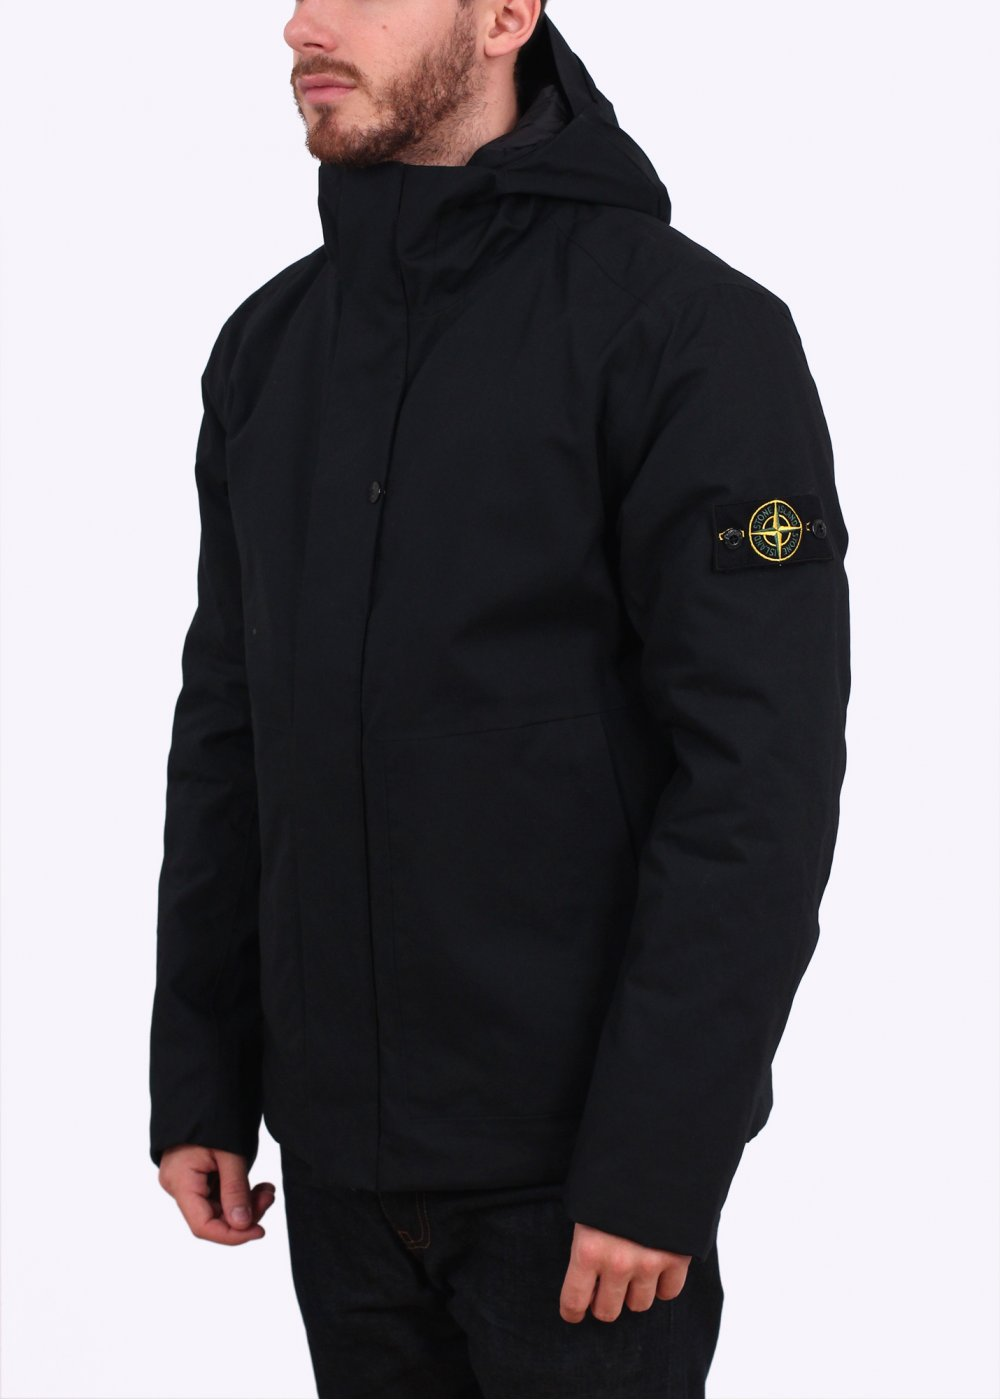 stone island 3l performance jacket black. Black Bedroom Furniture Sets. Home Design Ideas